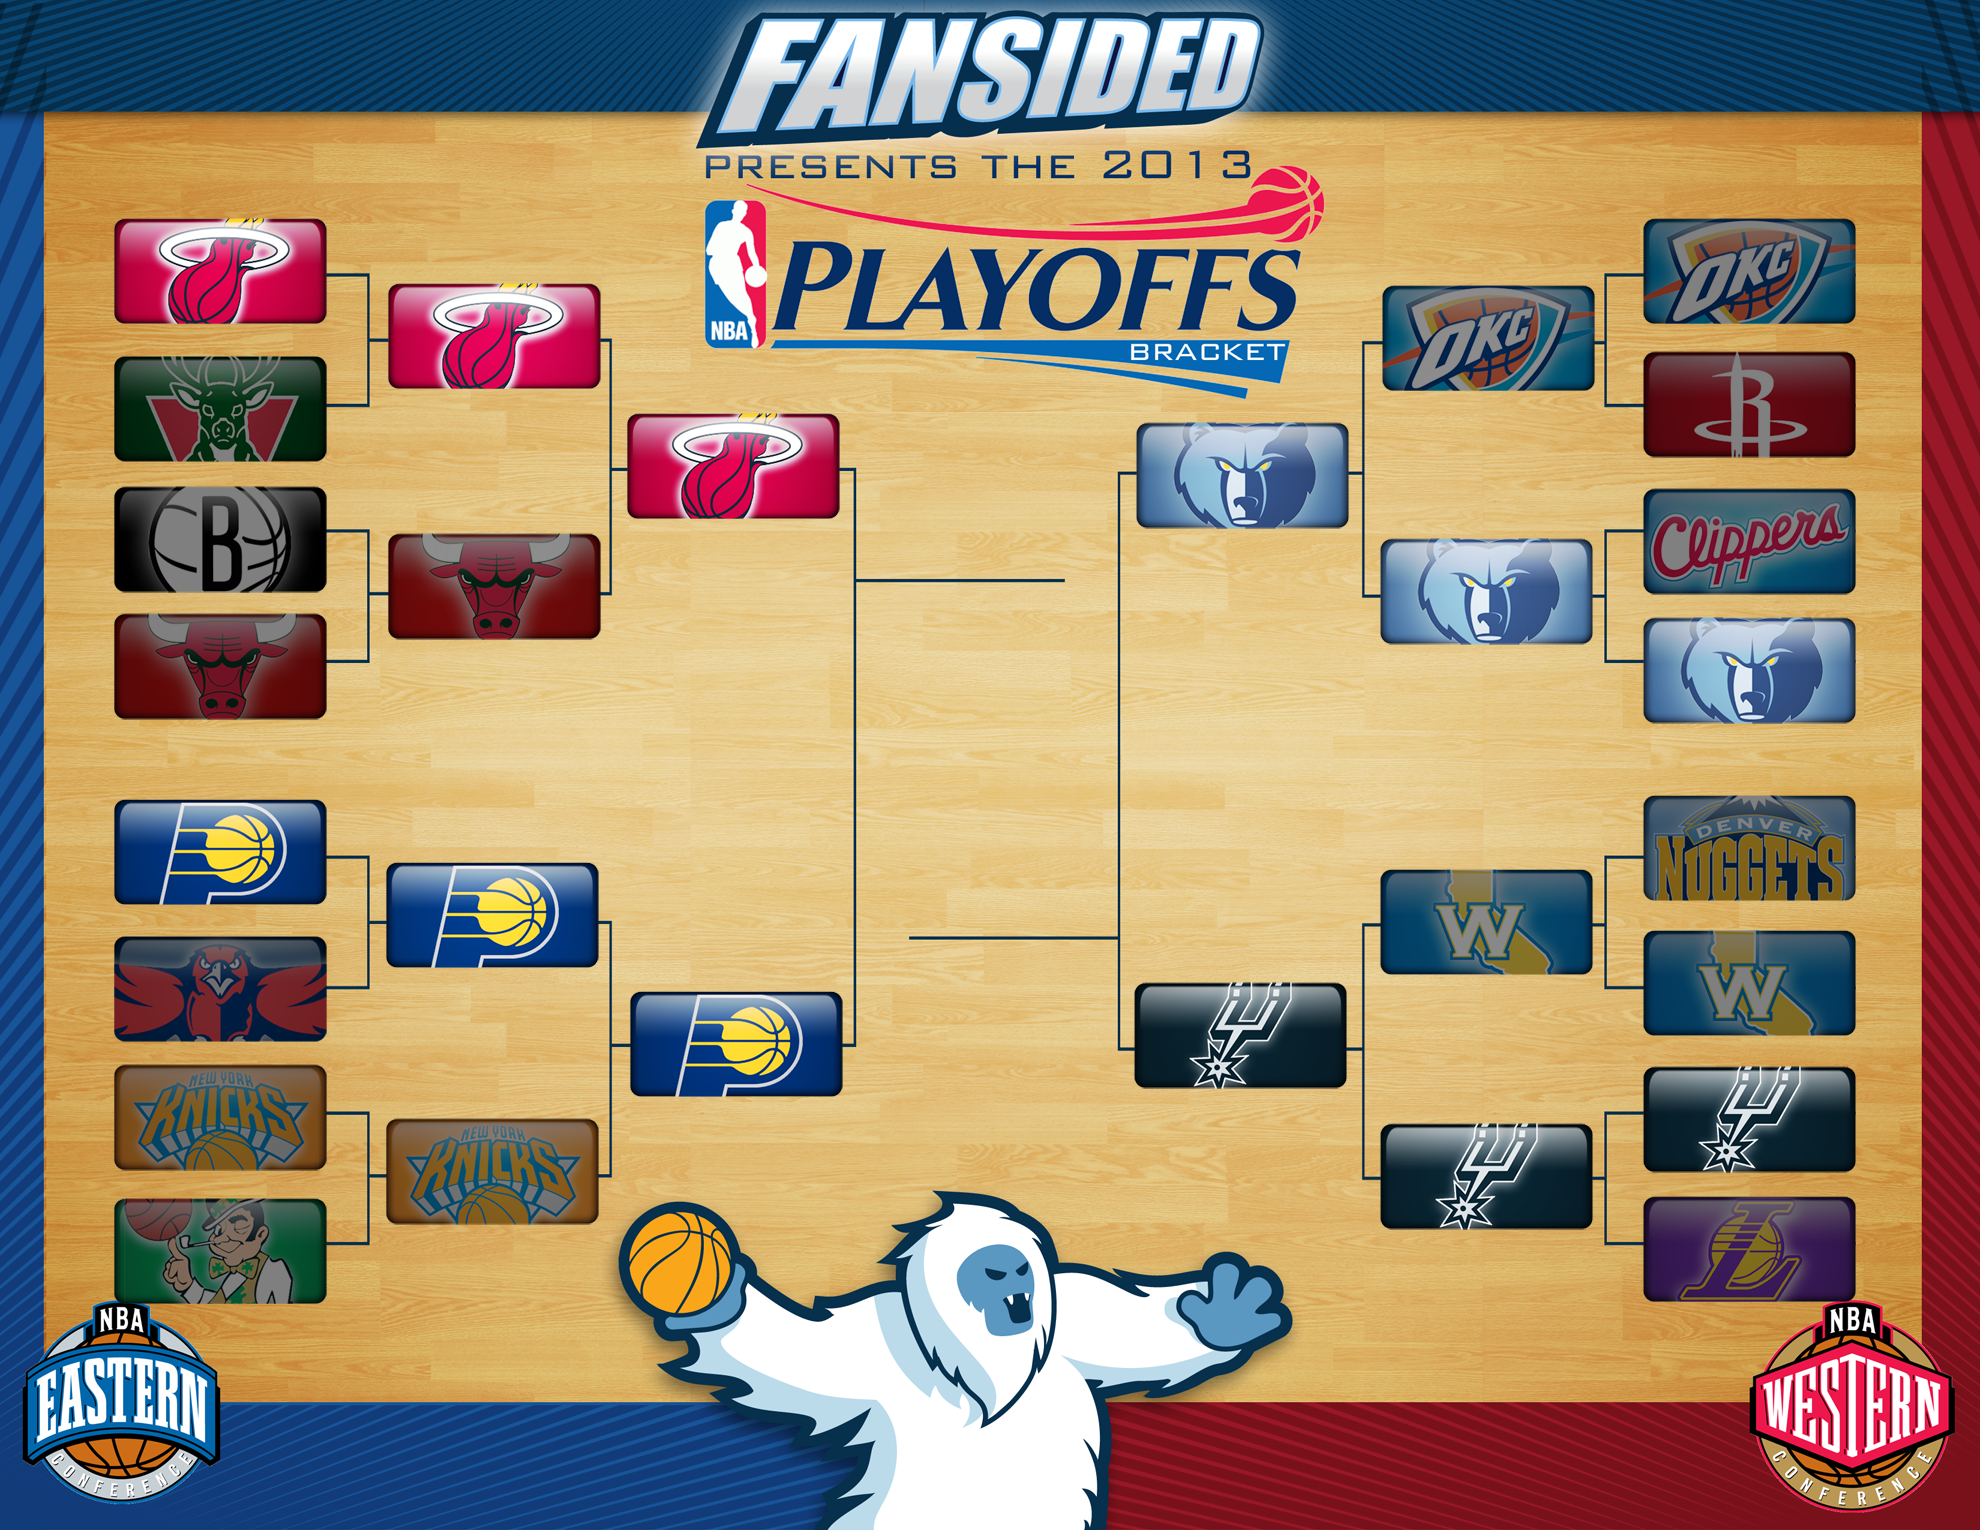 Nba Playoffs Bracket 2013 Eastern And Western Conference Finals Set